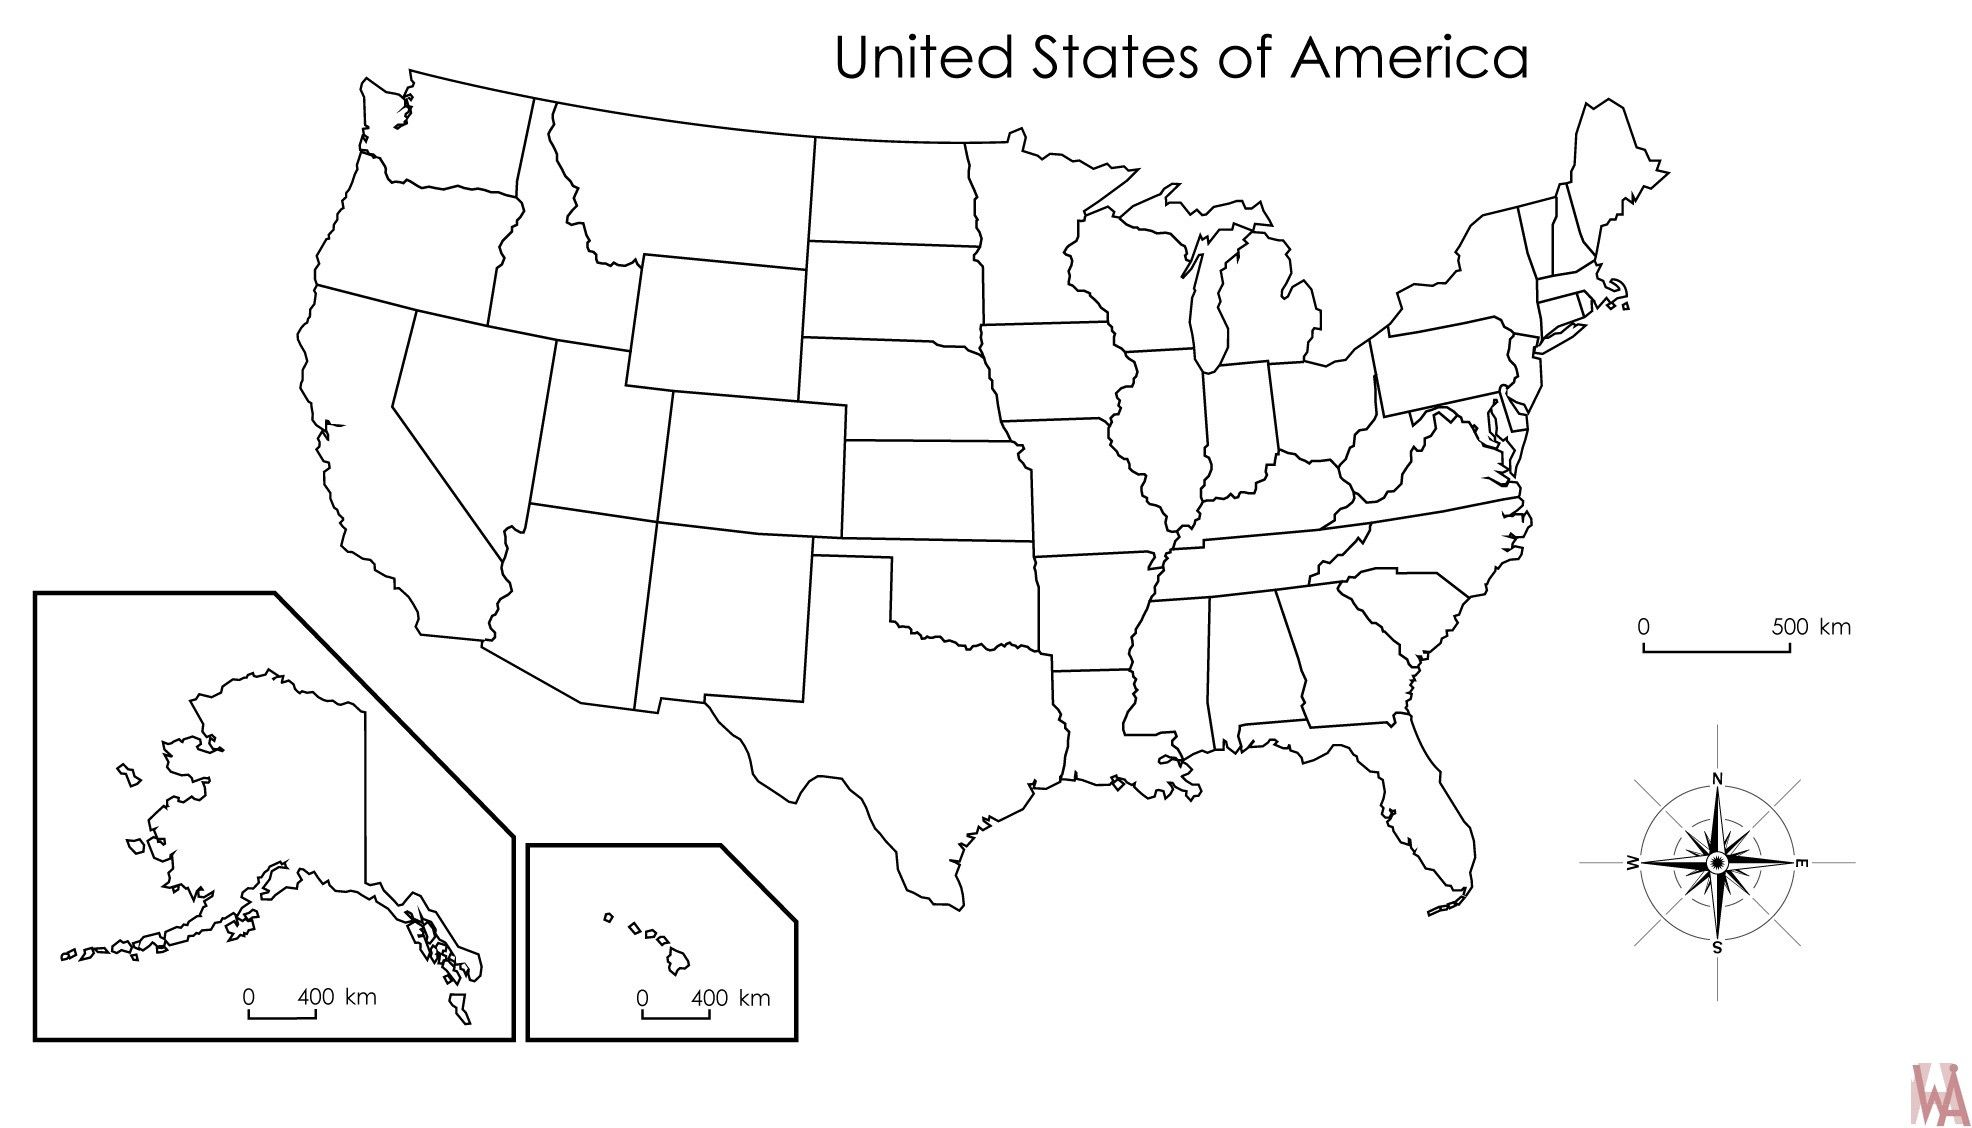 Blank United States Map Postedryan Tremblay With United